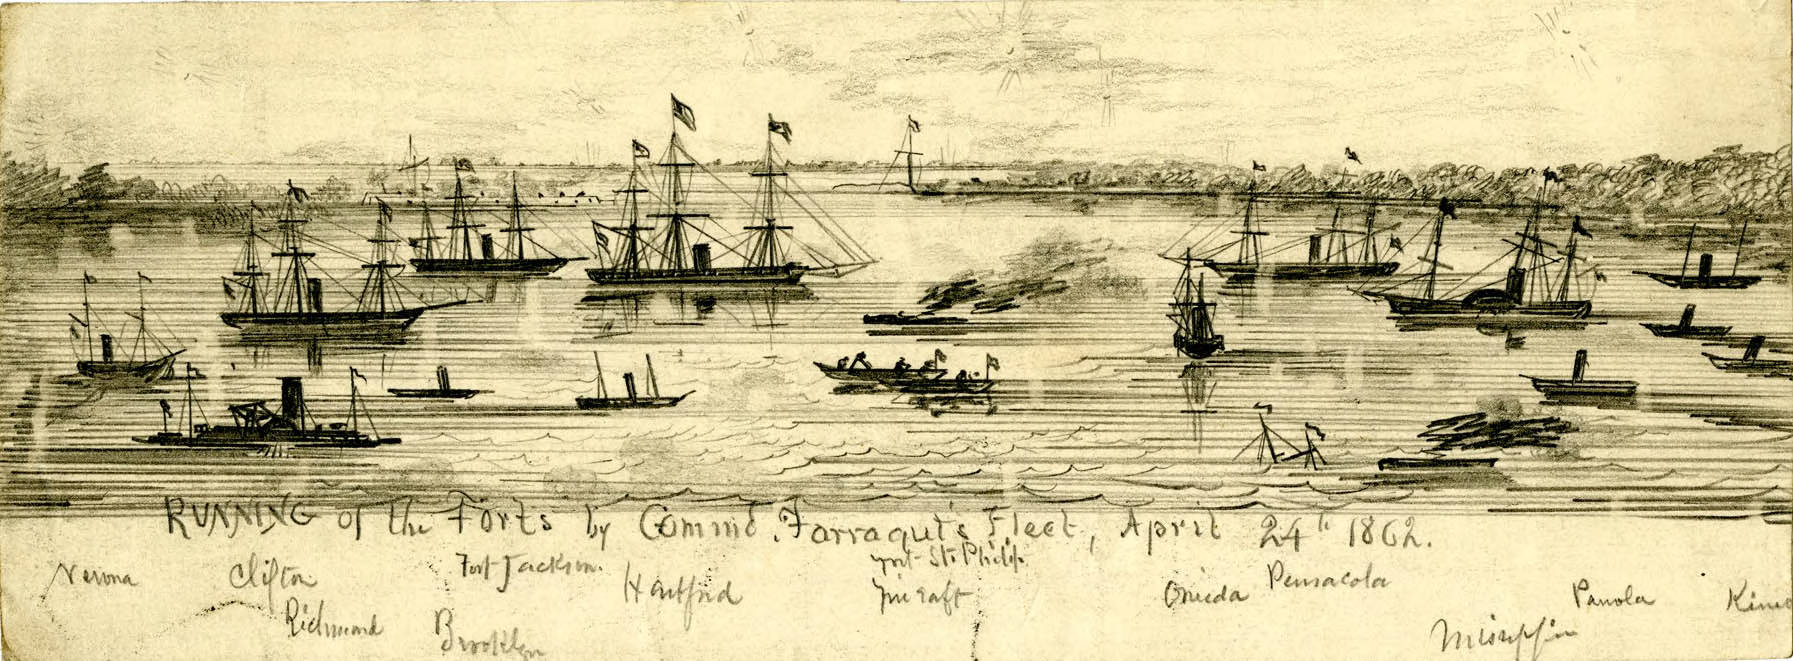 Running of the Forts by Farragut